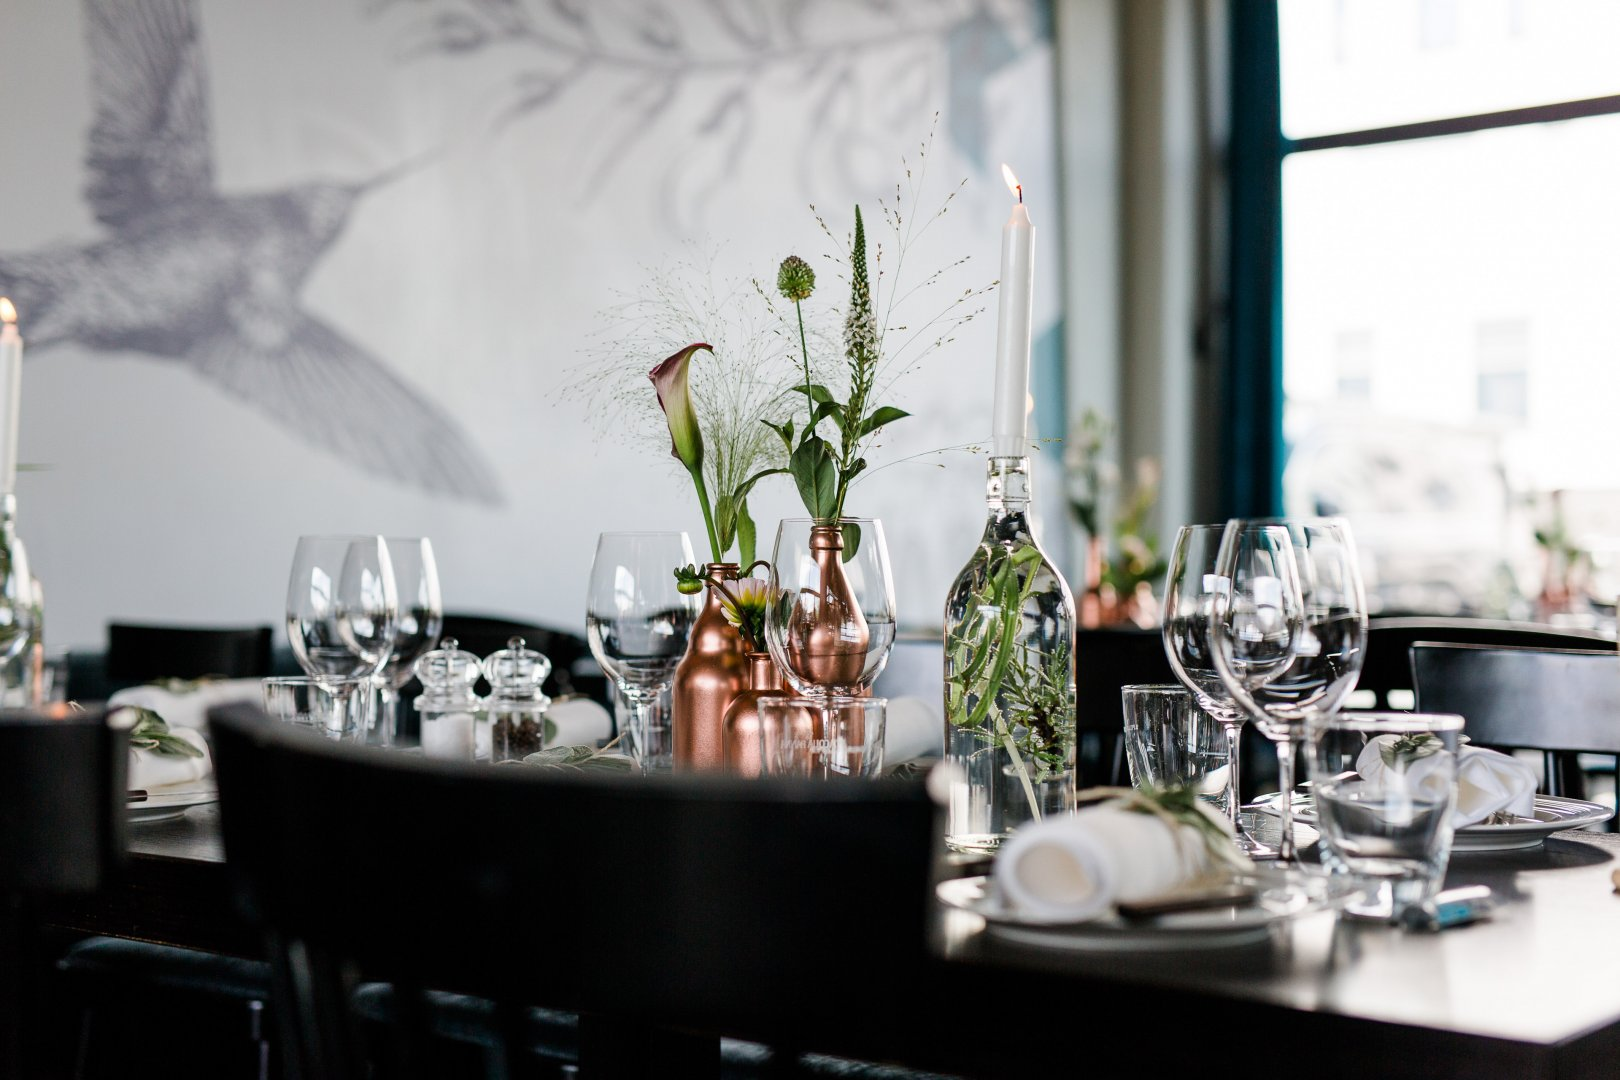 White Rehearsal dinner Restaurant Room Centrepiece Table Interior design Dining room Black-and-white Furniture Flower Textile Plant Brunch Event Meal Chair Glass Monochrome photography Tableware Interior design Floral design Floristry